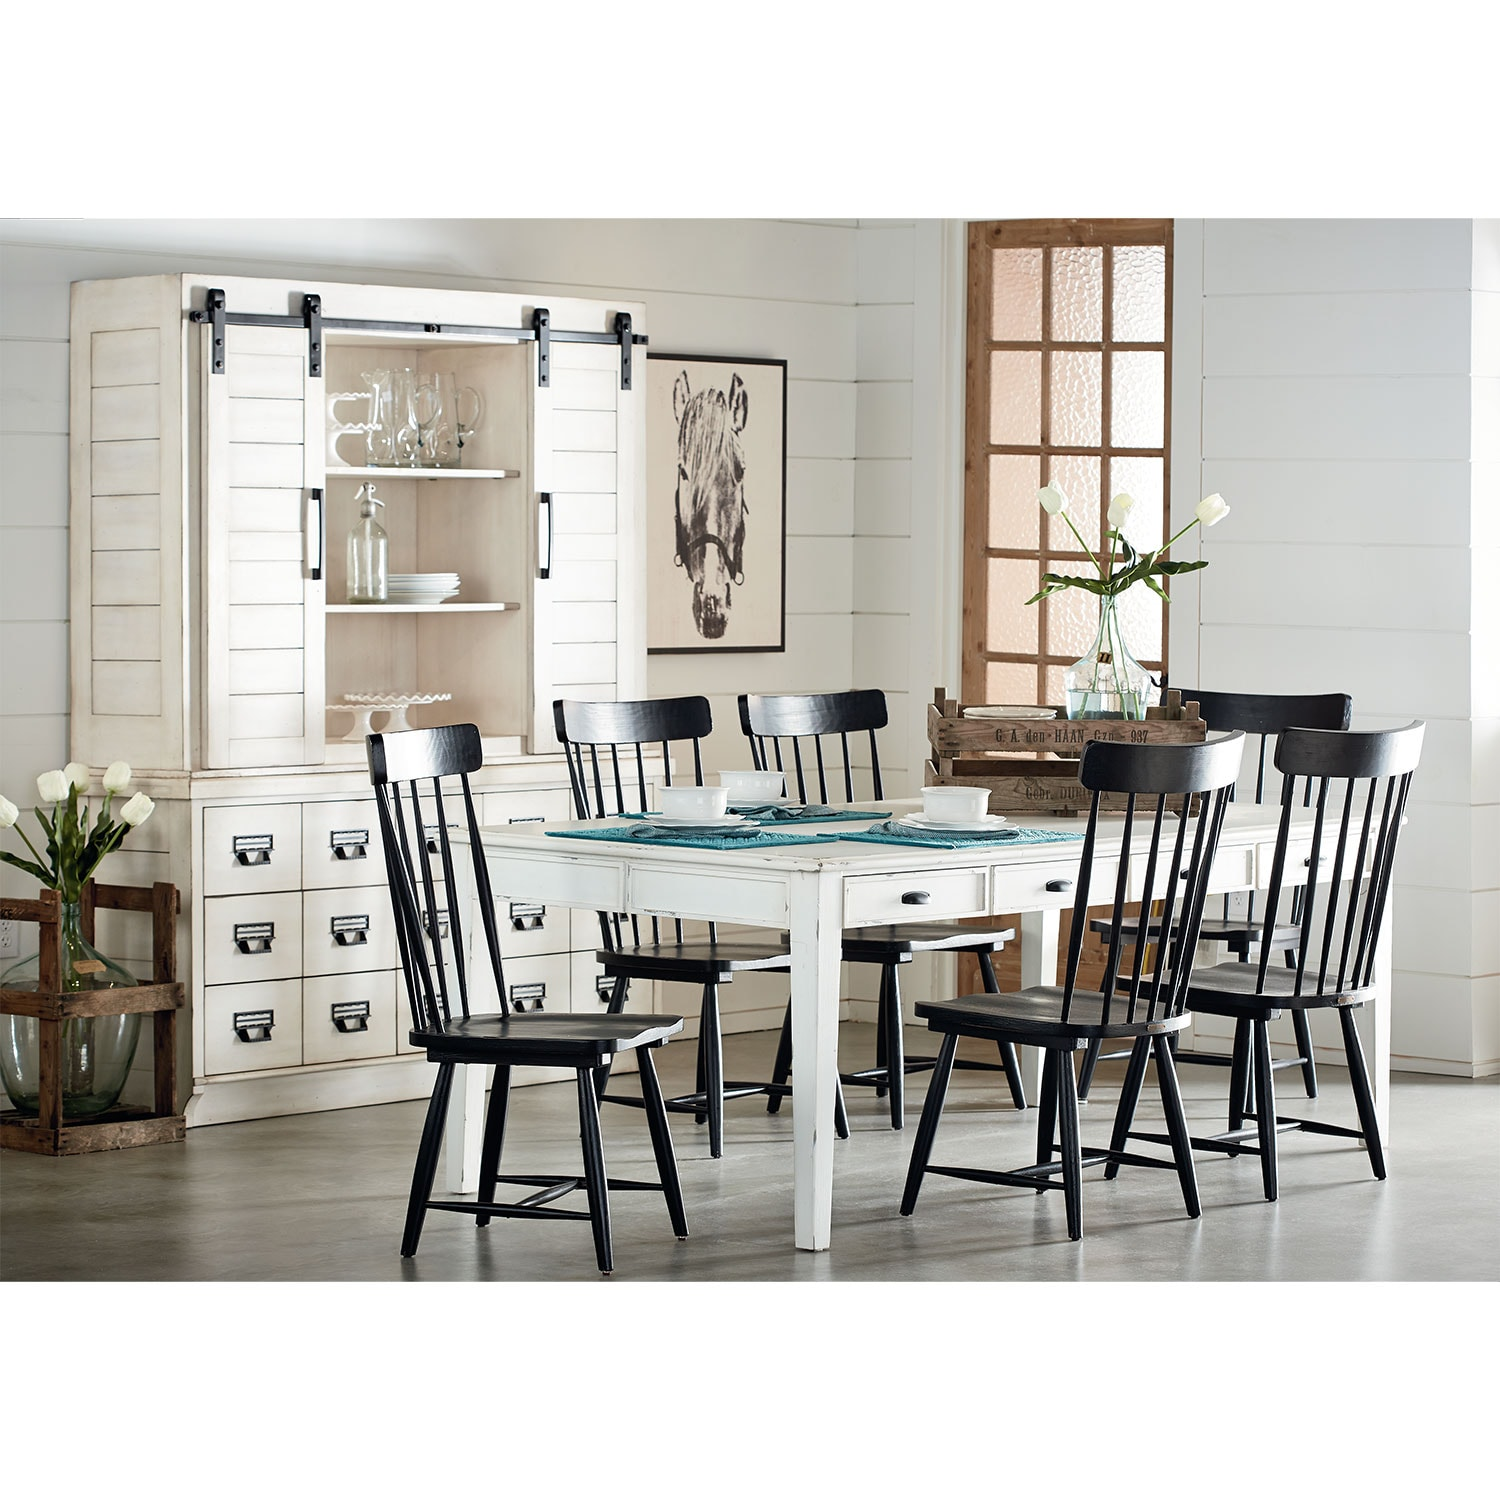 Dining Room Furniture - Farmhouse Keeping Table, Six Farmhouse Spindle Back Chairs and Two Primitive Windsor Hoop Chairs